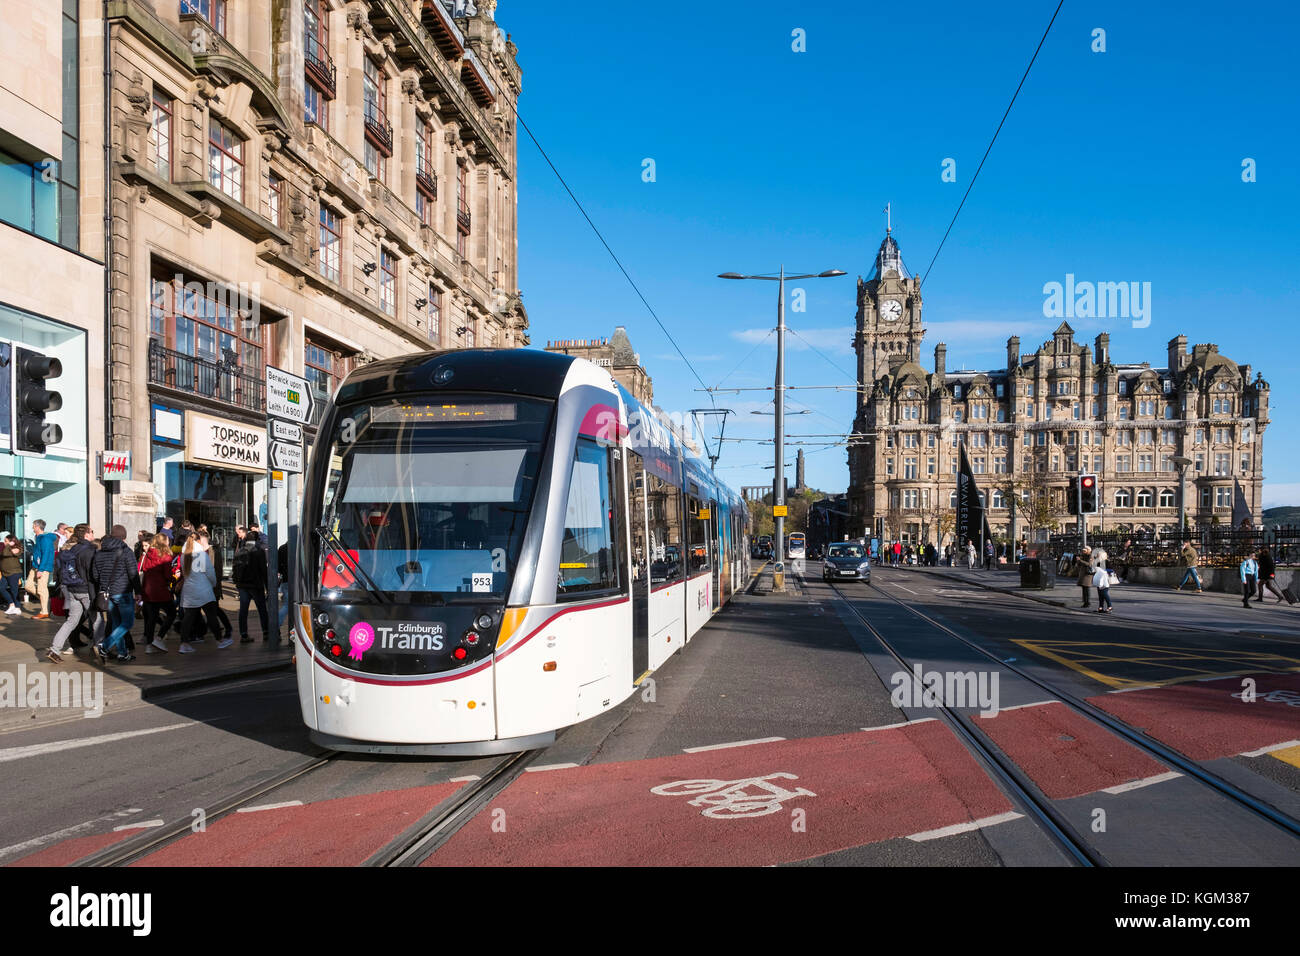 View along Princes street with tram and Balmoral Hotel visible in Edinburgh , Scotland, United Kingdom. Stock Photo